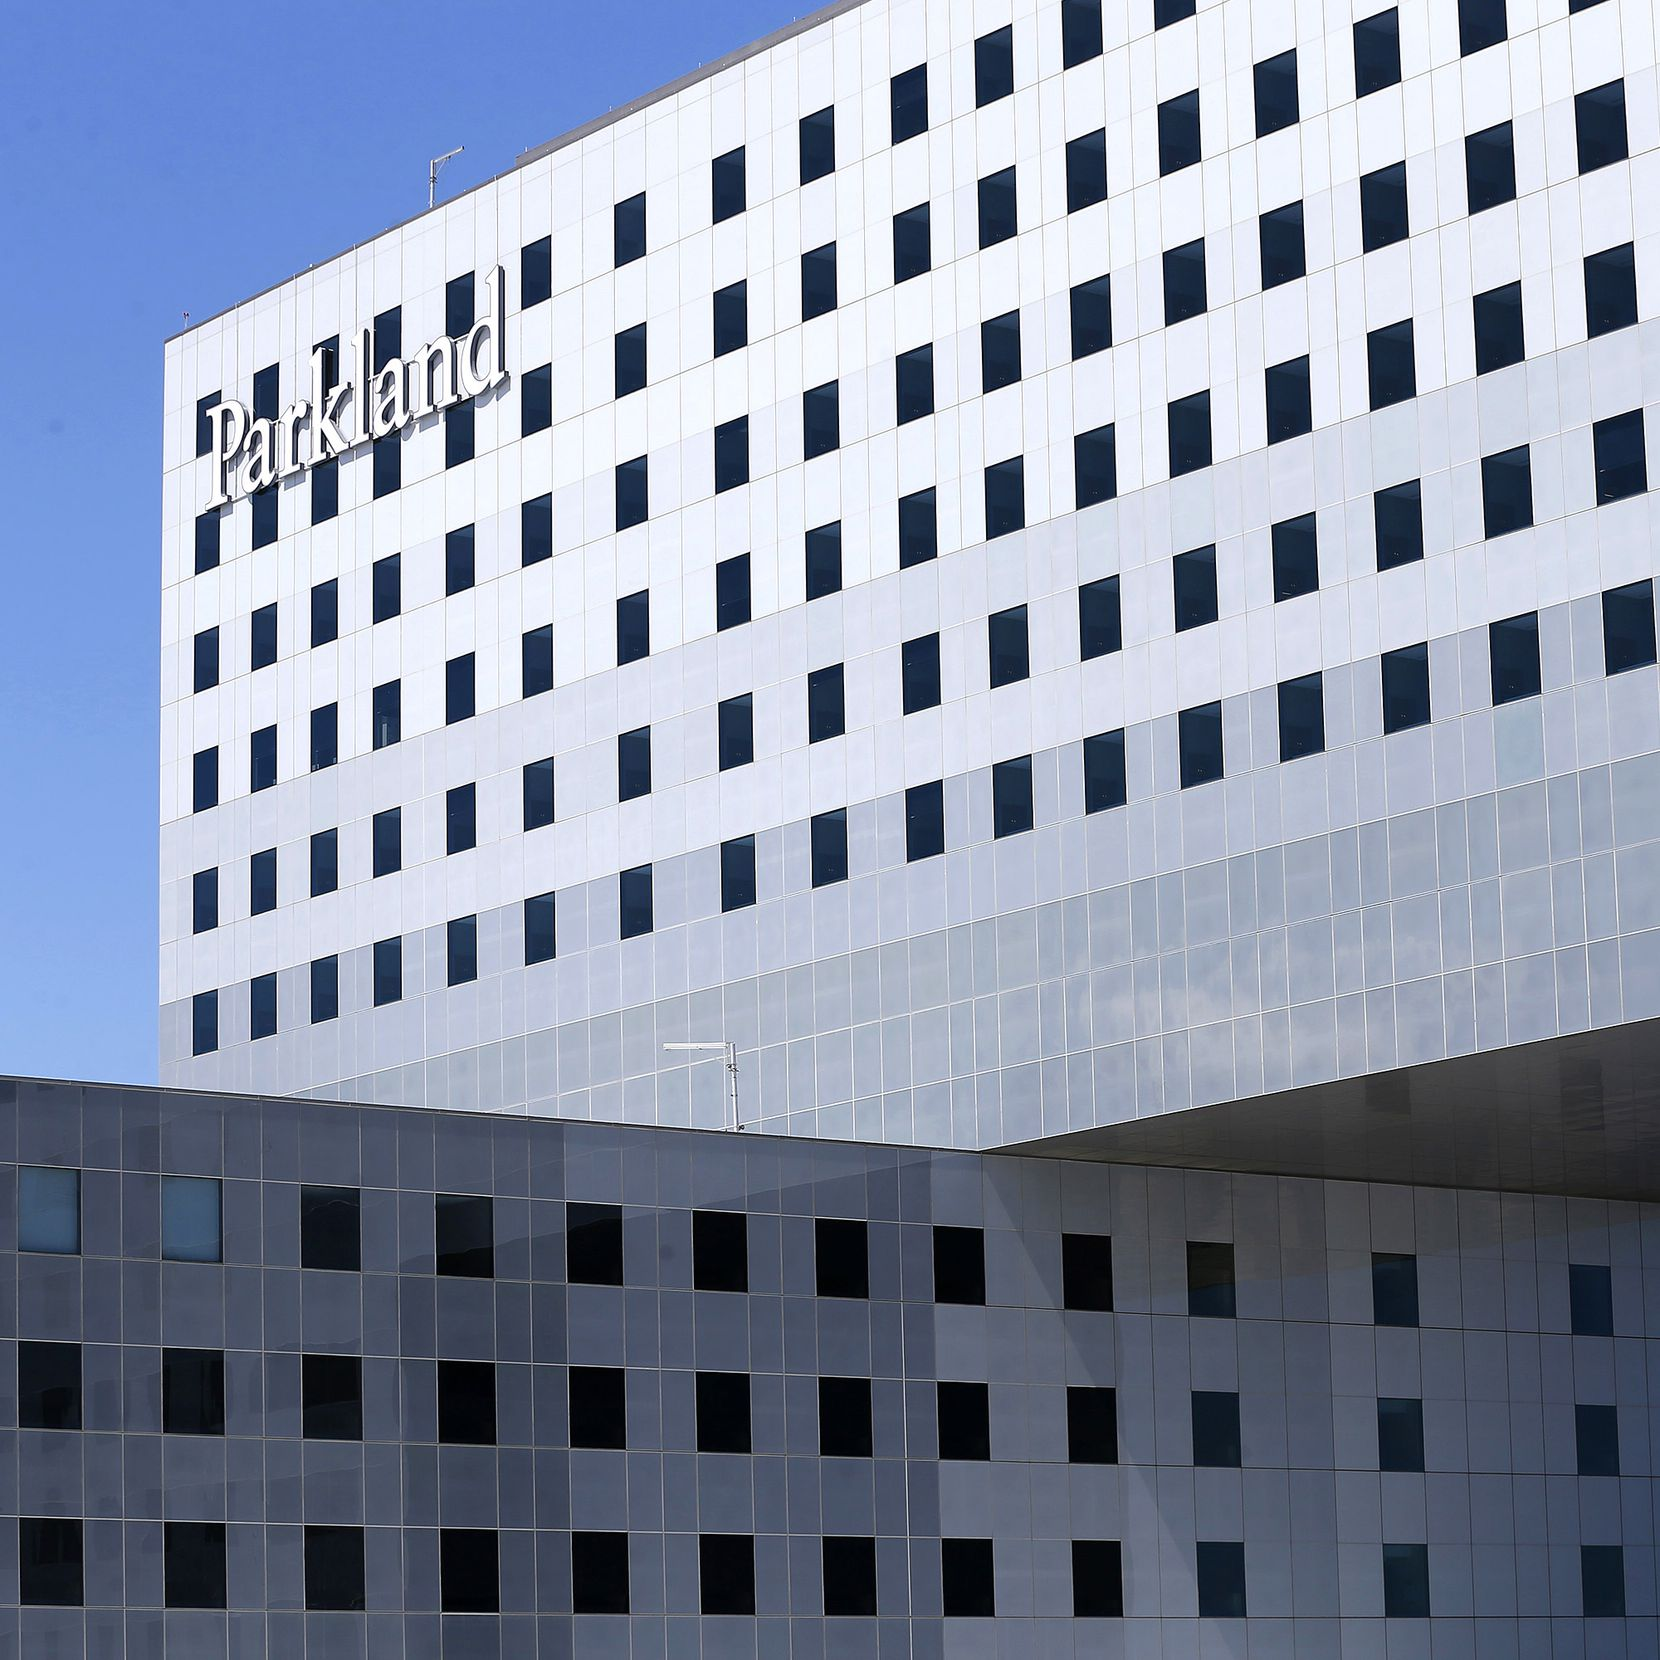 The new Parkland Hospital by Corgan is unabashedly modern and forward in its thinking.